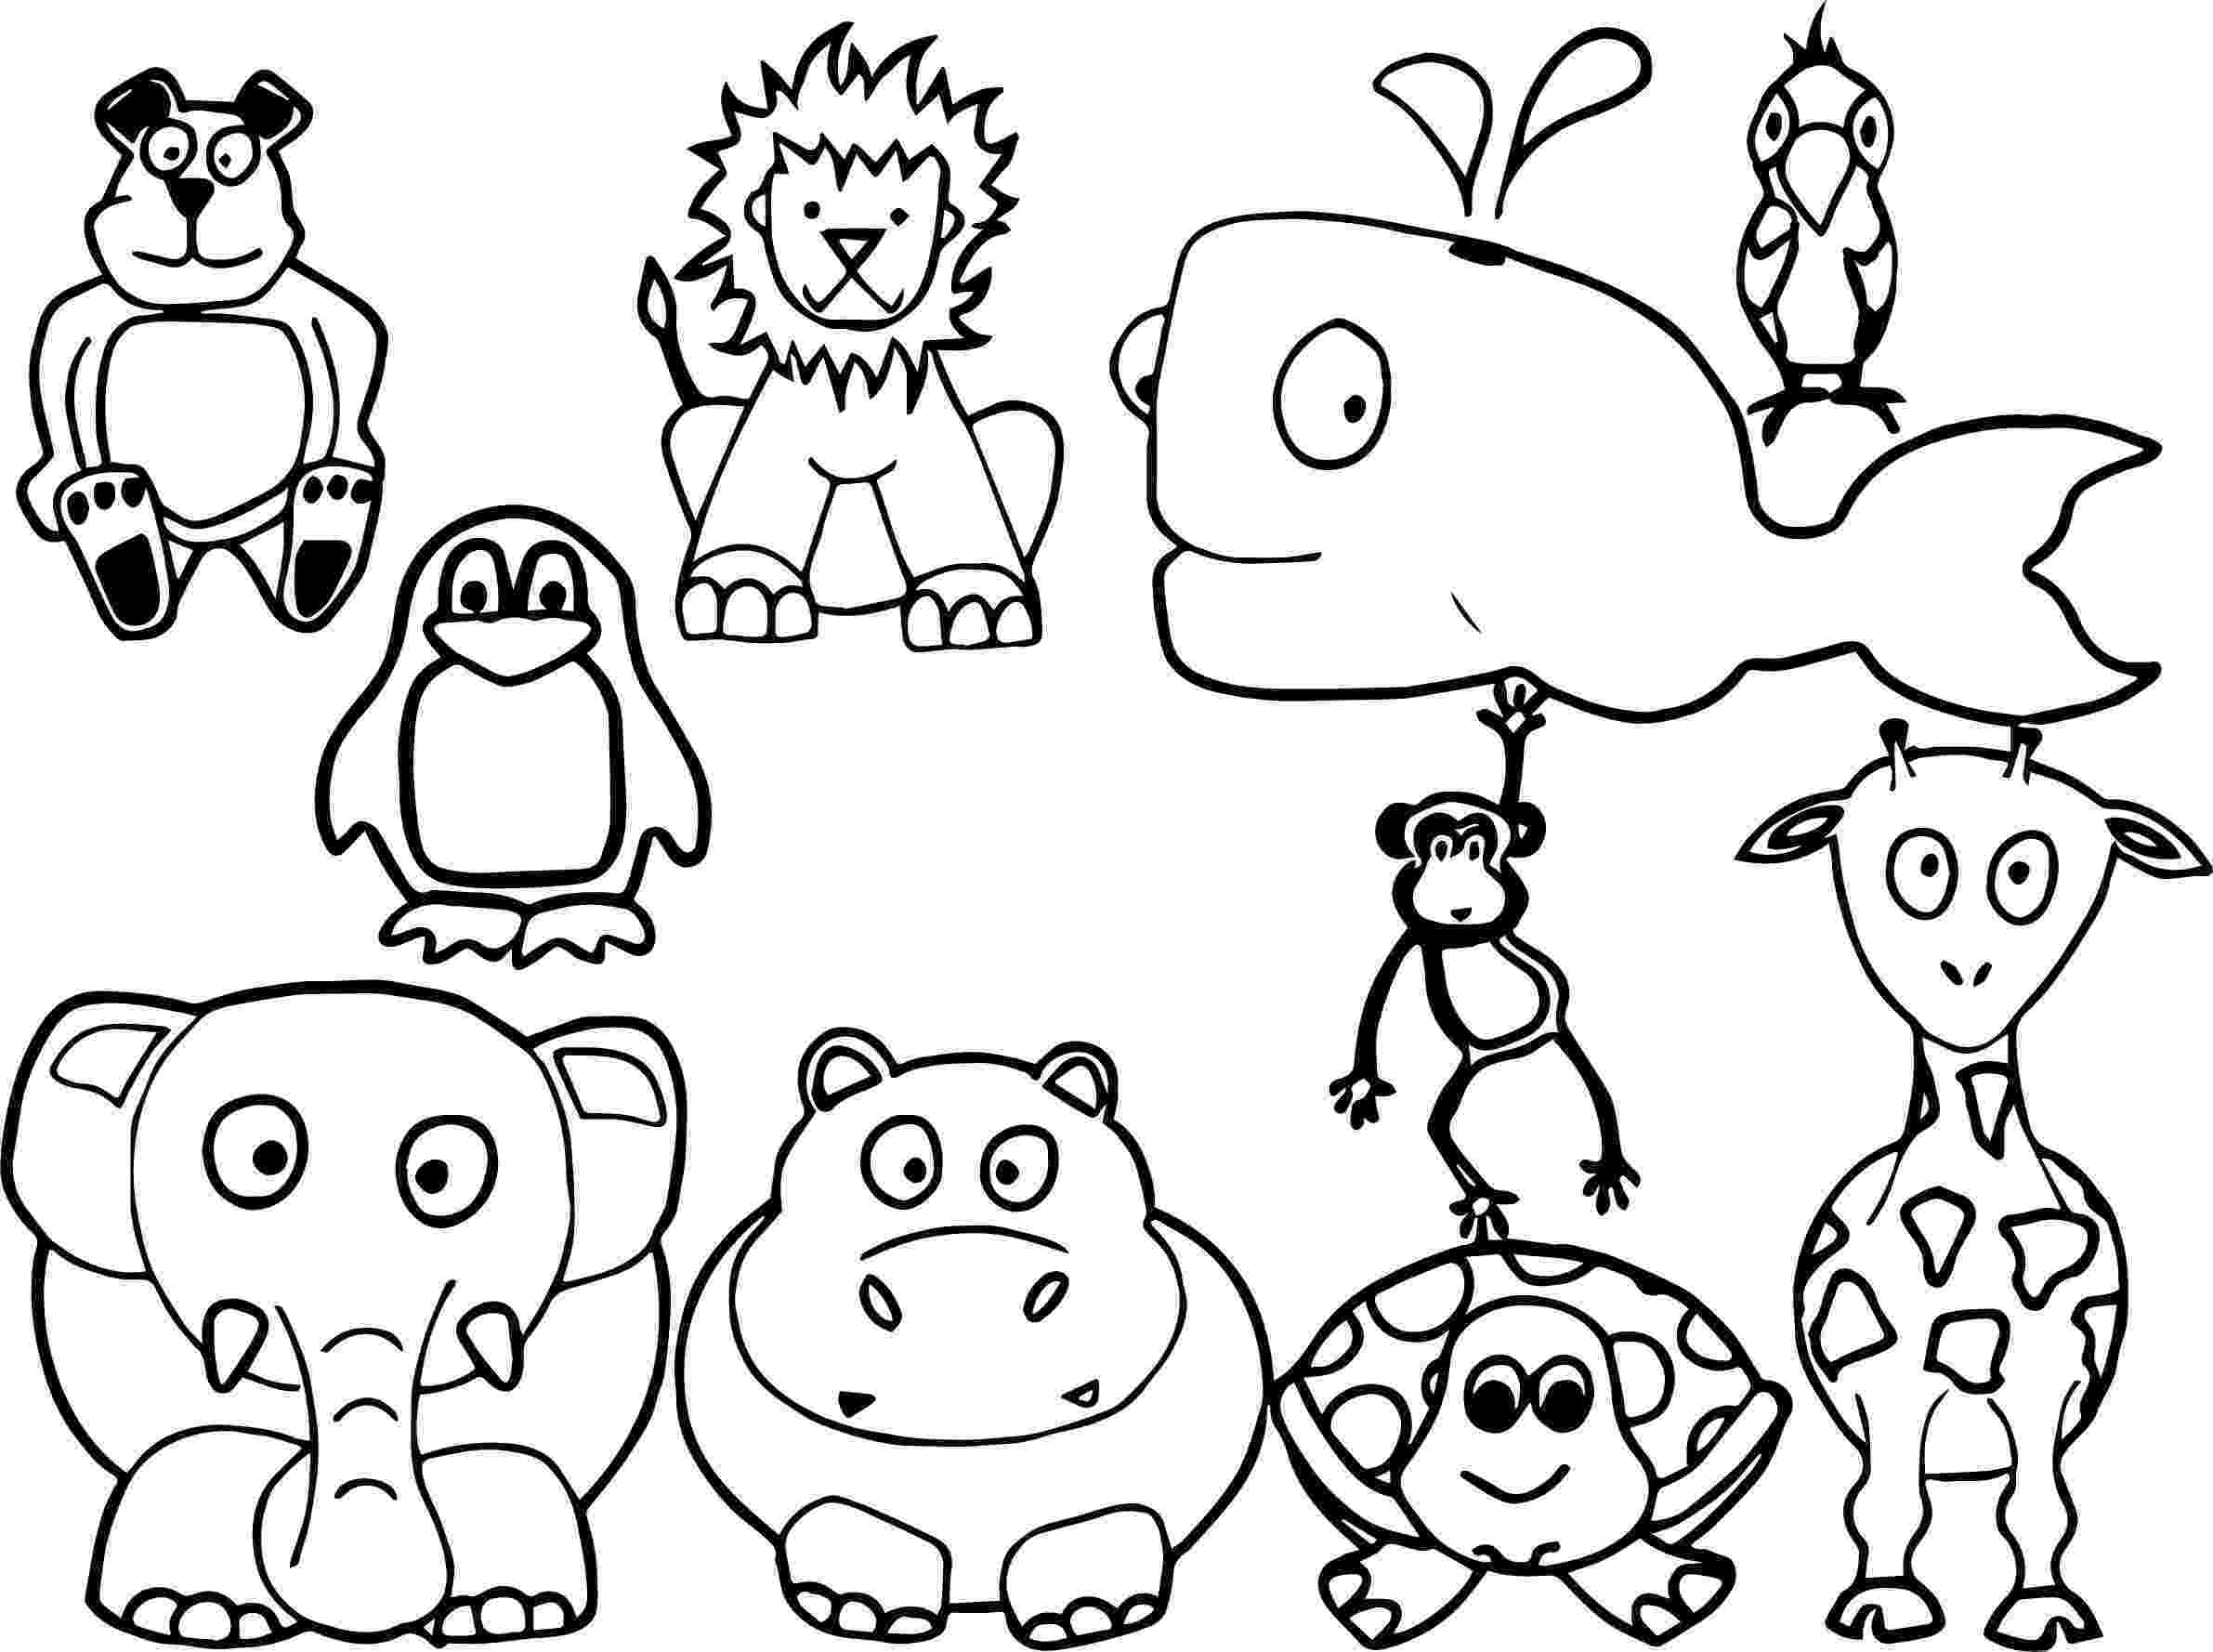 free animal coloring pages animal coloring pages best coloring pages for kids animal coloring pages free